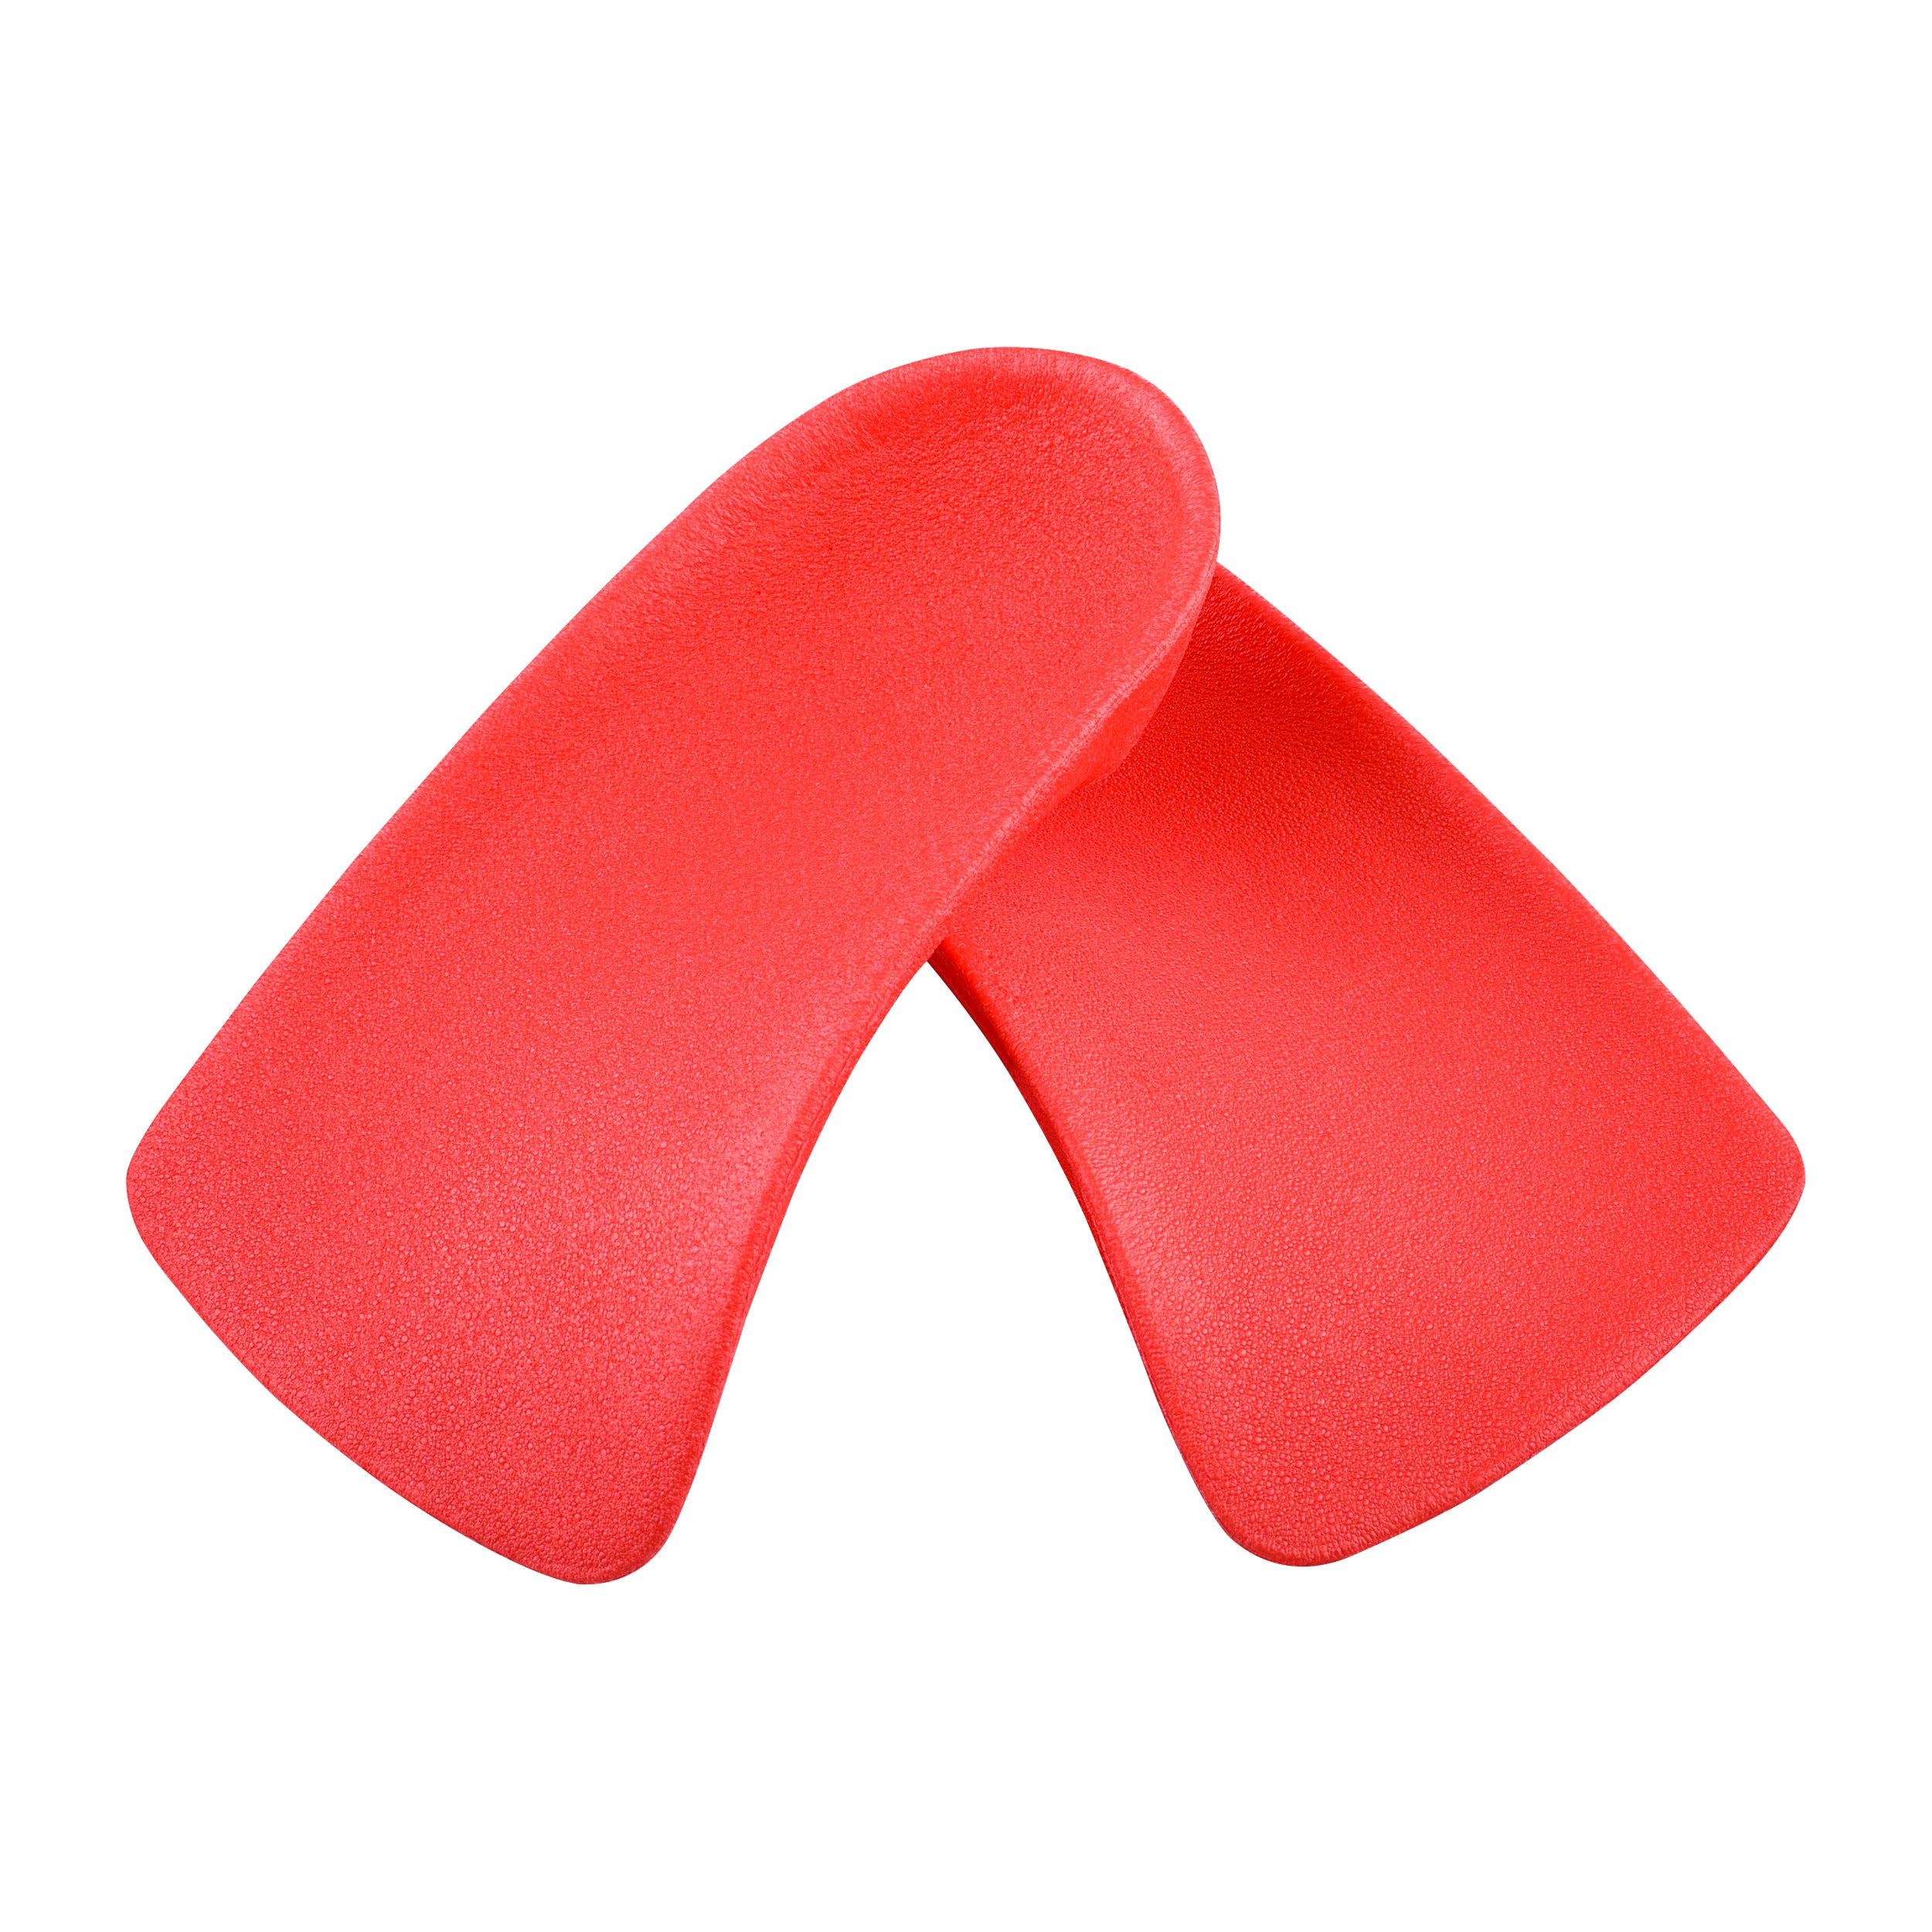 Comfort Insoles – Arch Angels Insoles